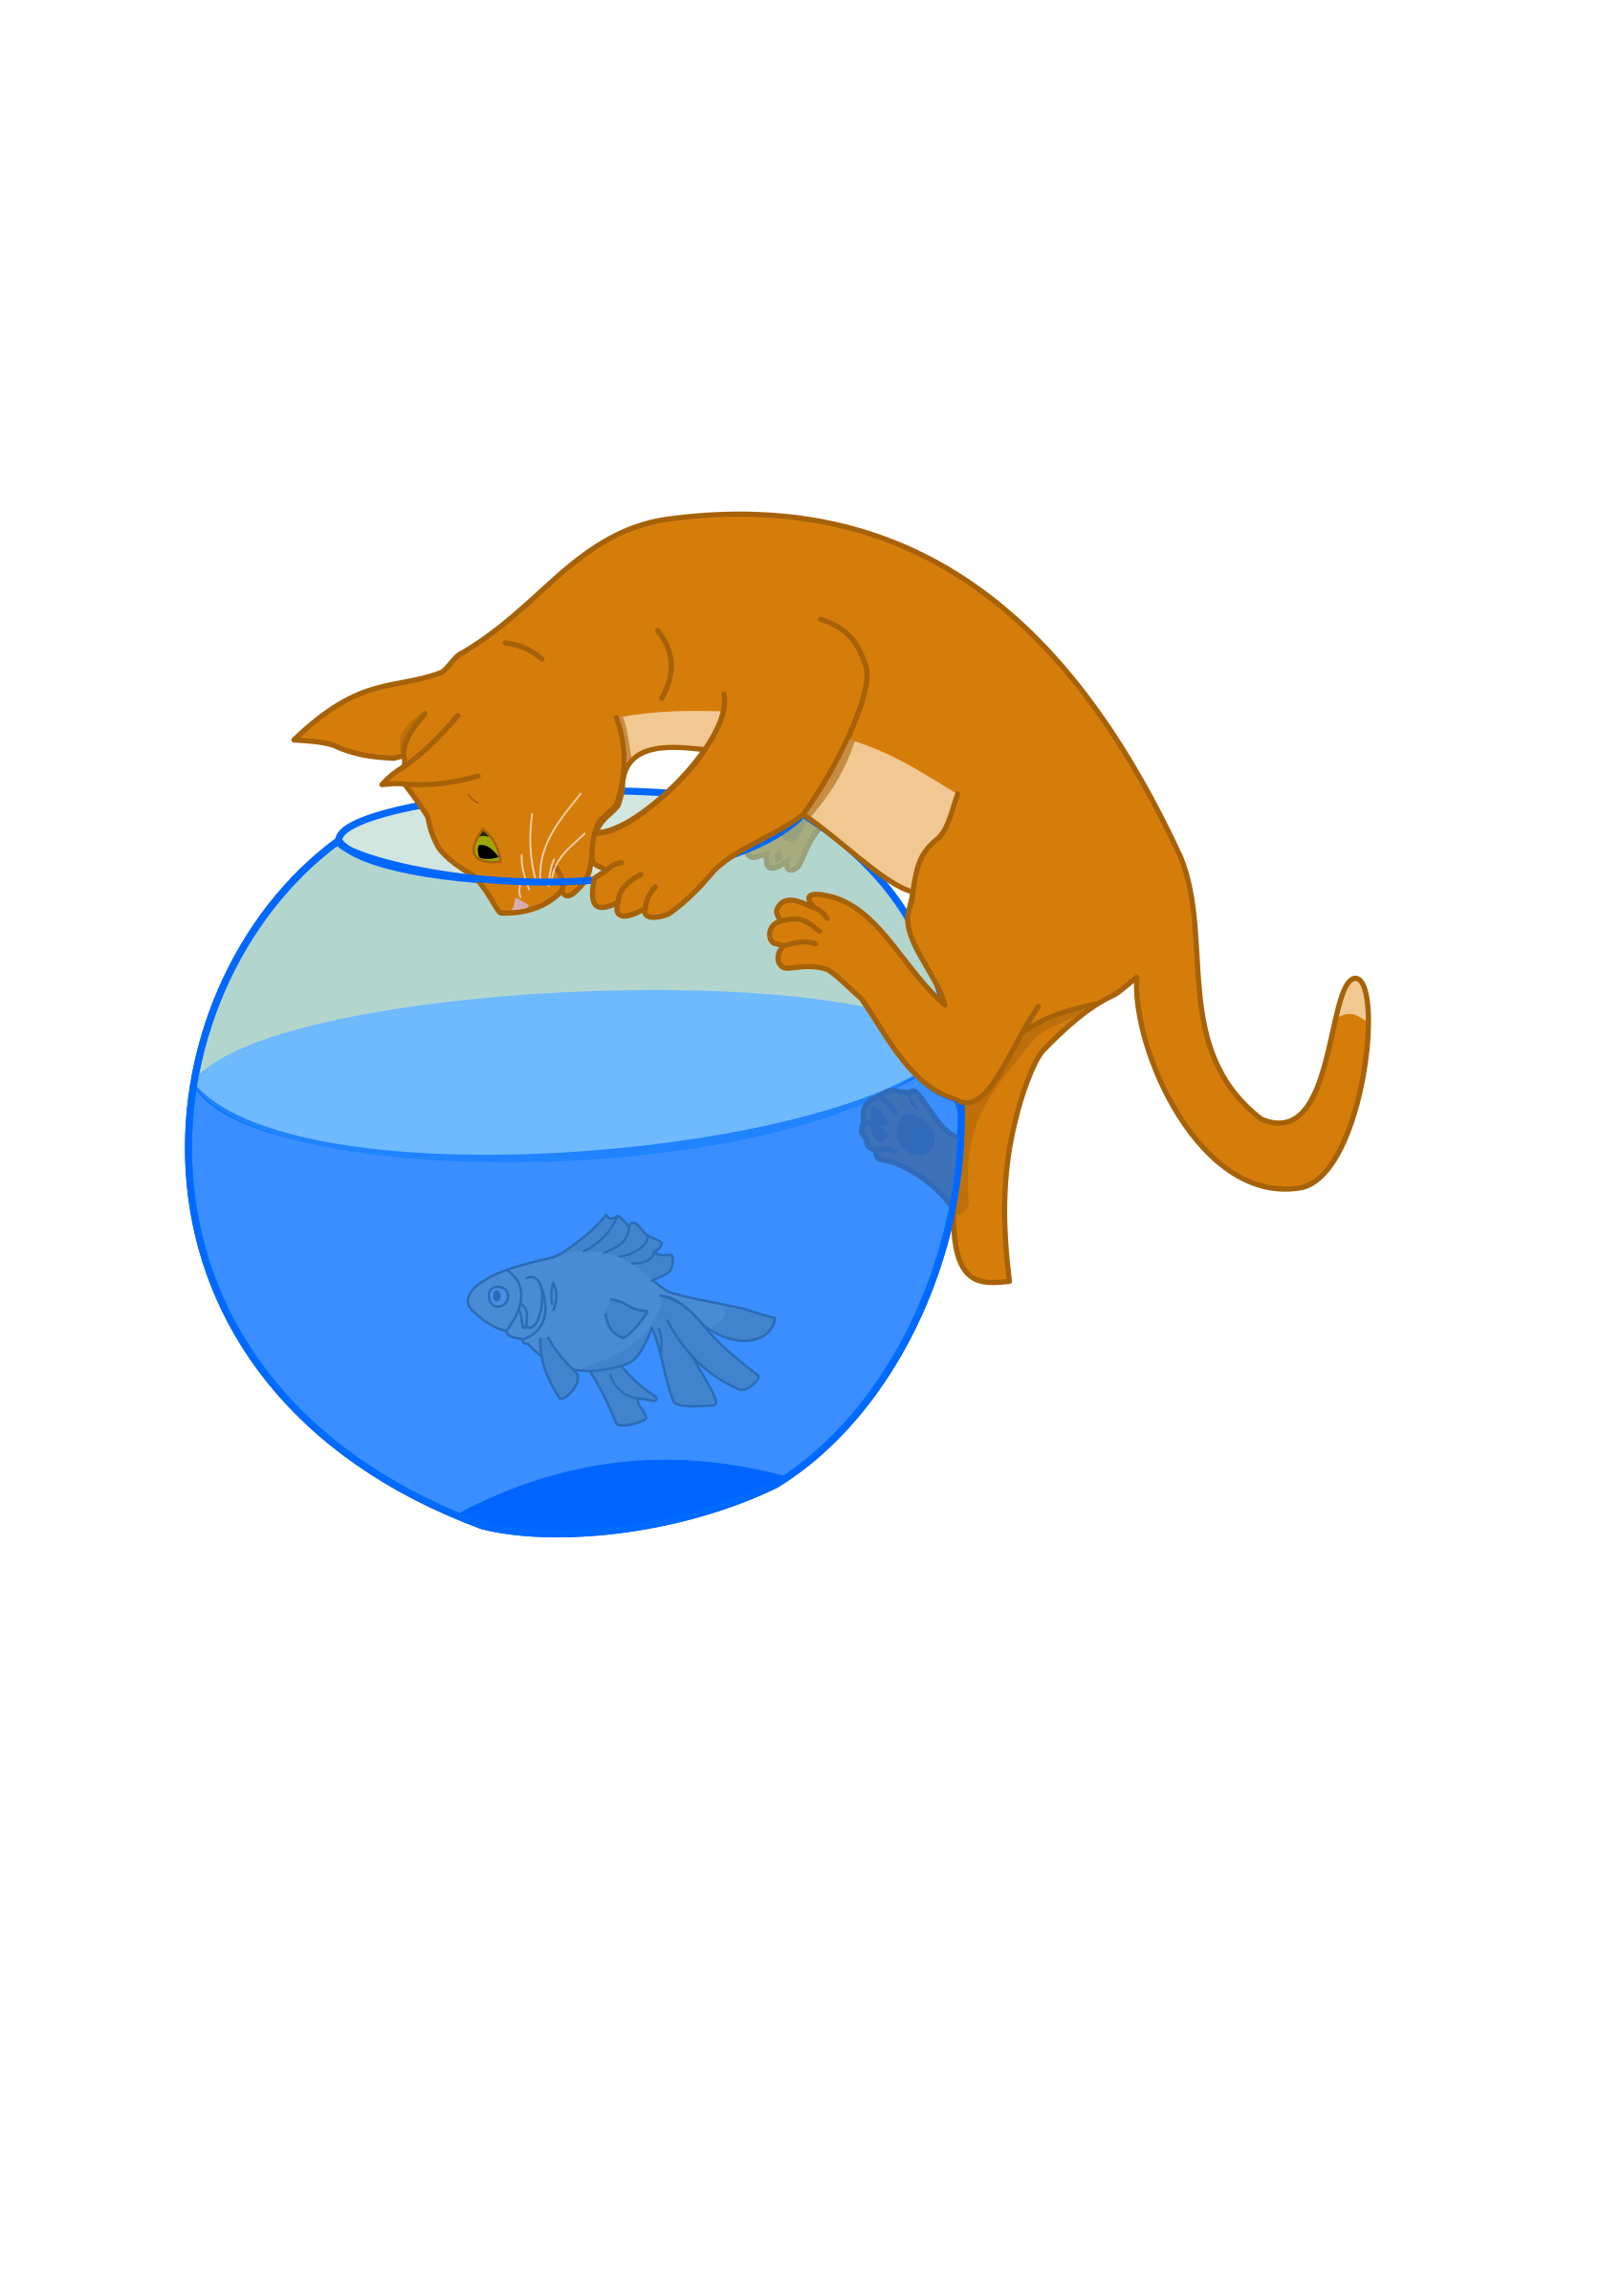 Cat bowl clipart image freeuse library Clipart - Cat and fish image freeuse library